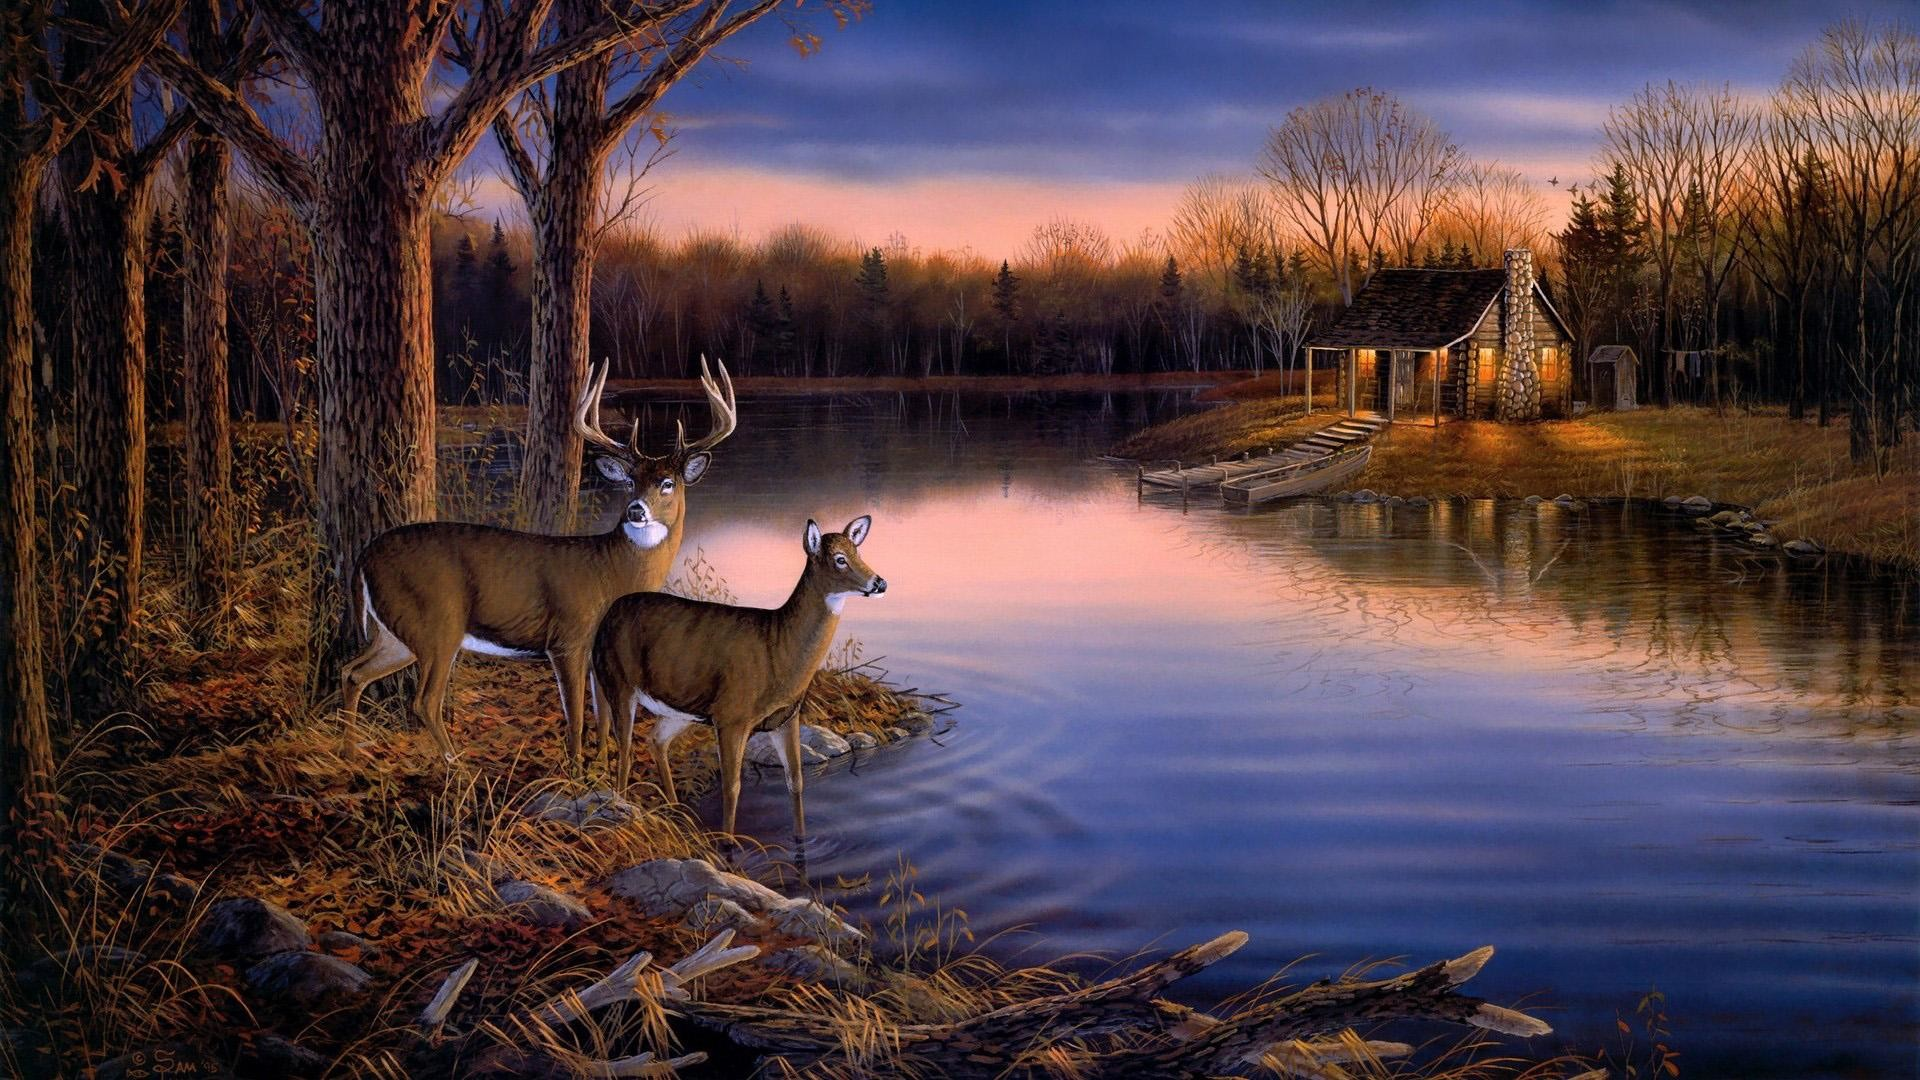 Deer Hunting Wallpaper Border | … ,landscape wallpaper Picture  1080p hd wallpaper